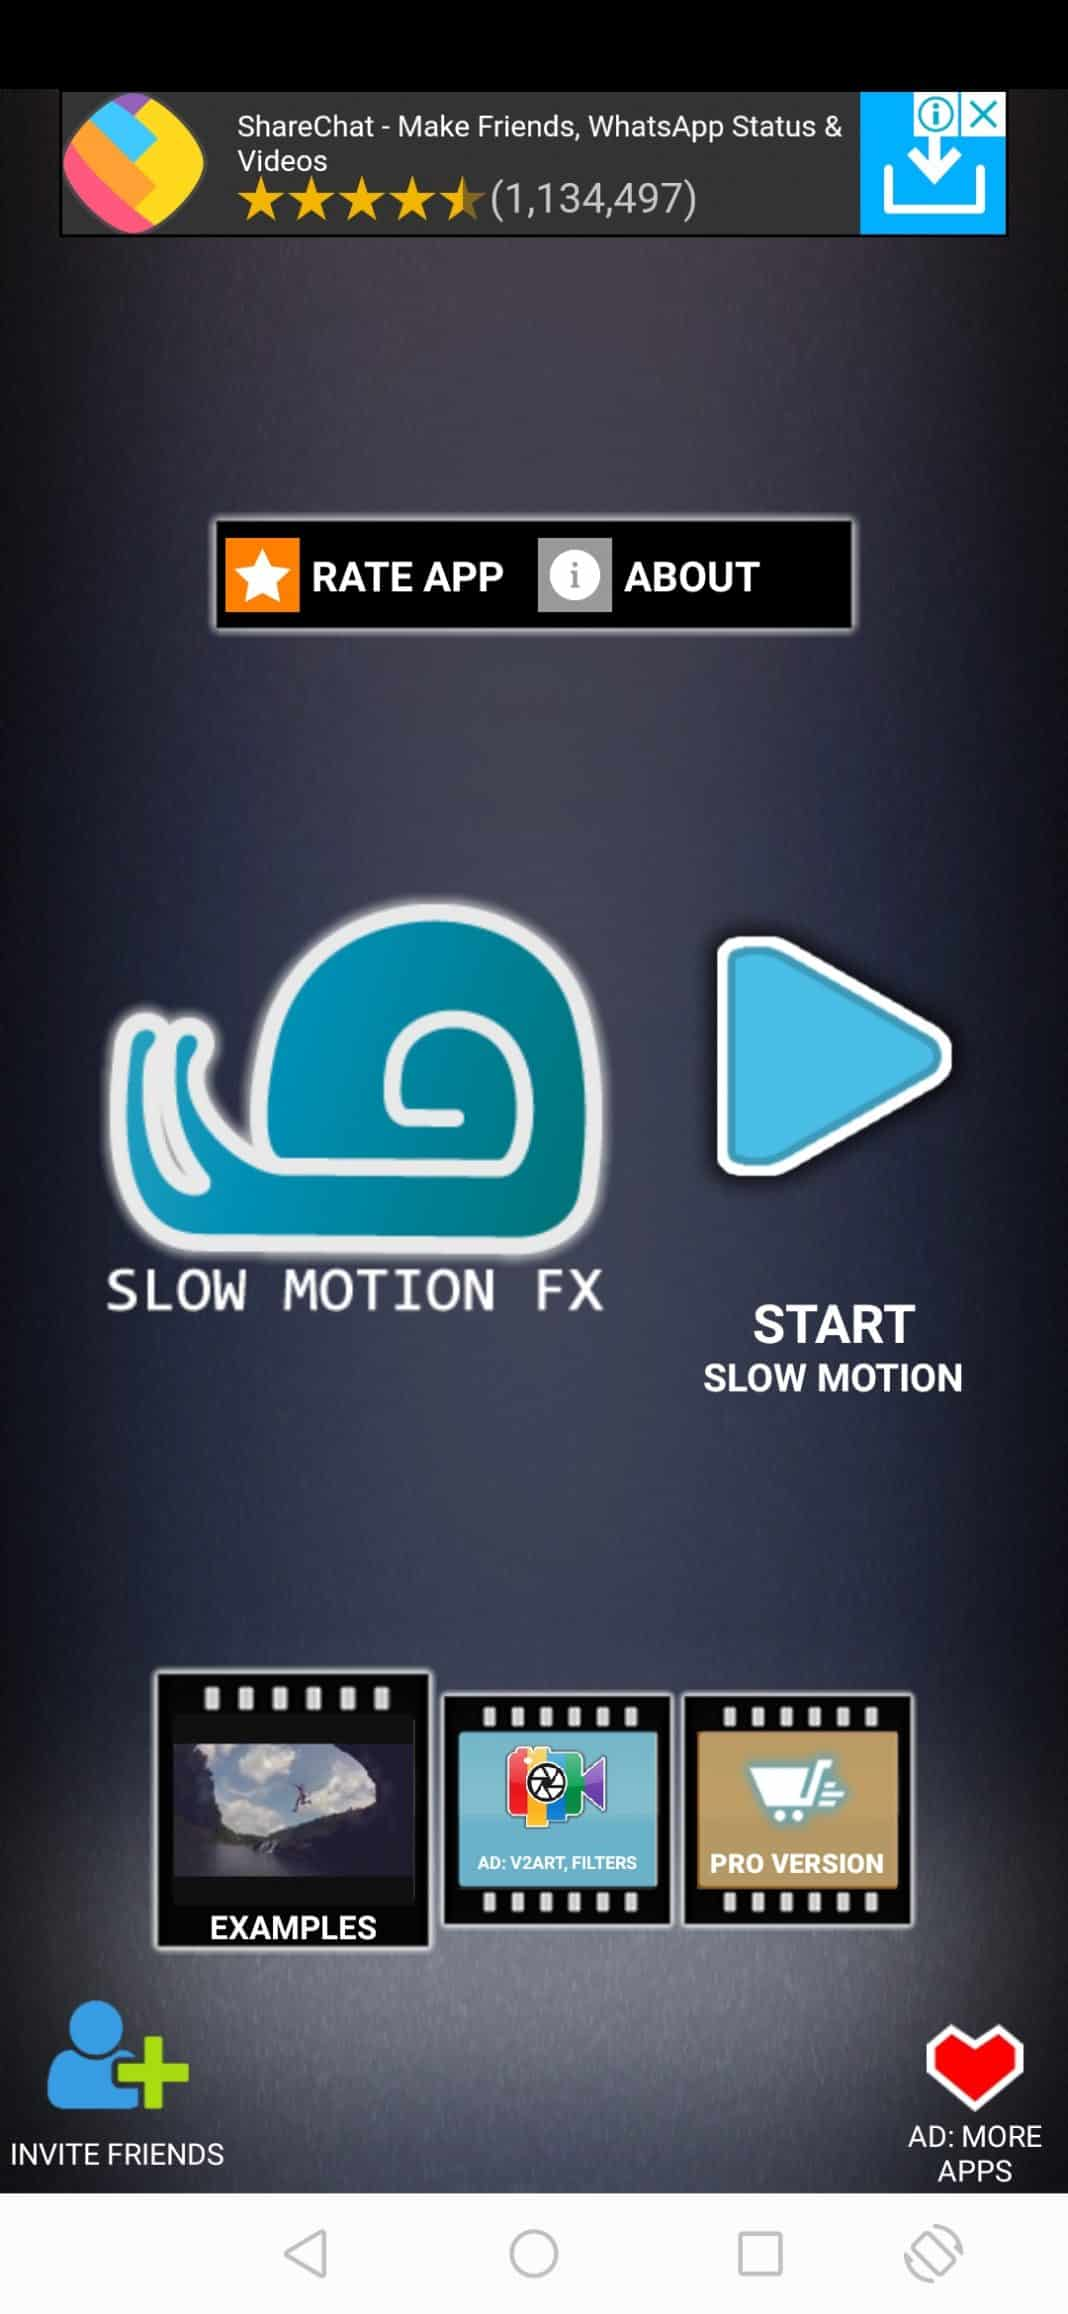 Enable Slow Motion Video in Any Android Device